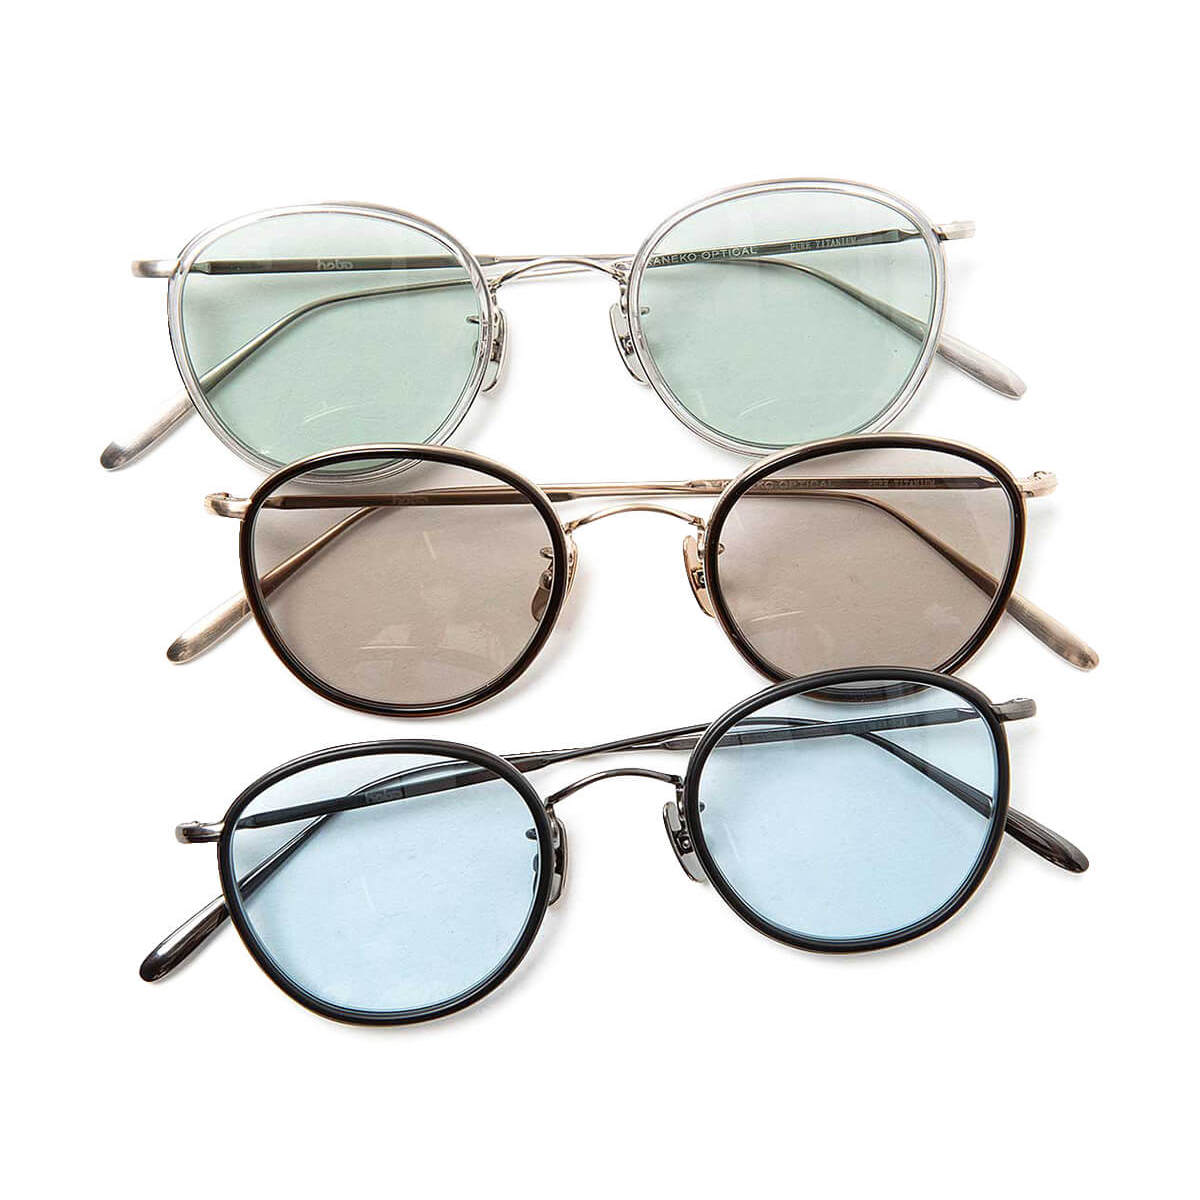 HOBO / ROUND FRAME TITANIUM GLASSES by KANEKO OPTICAL